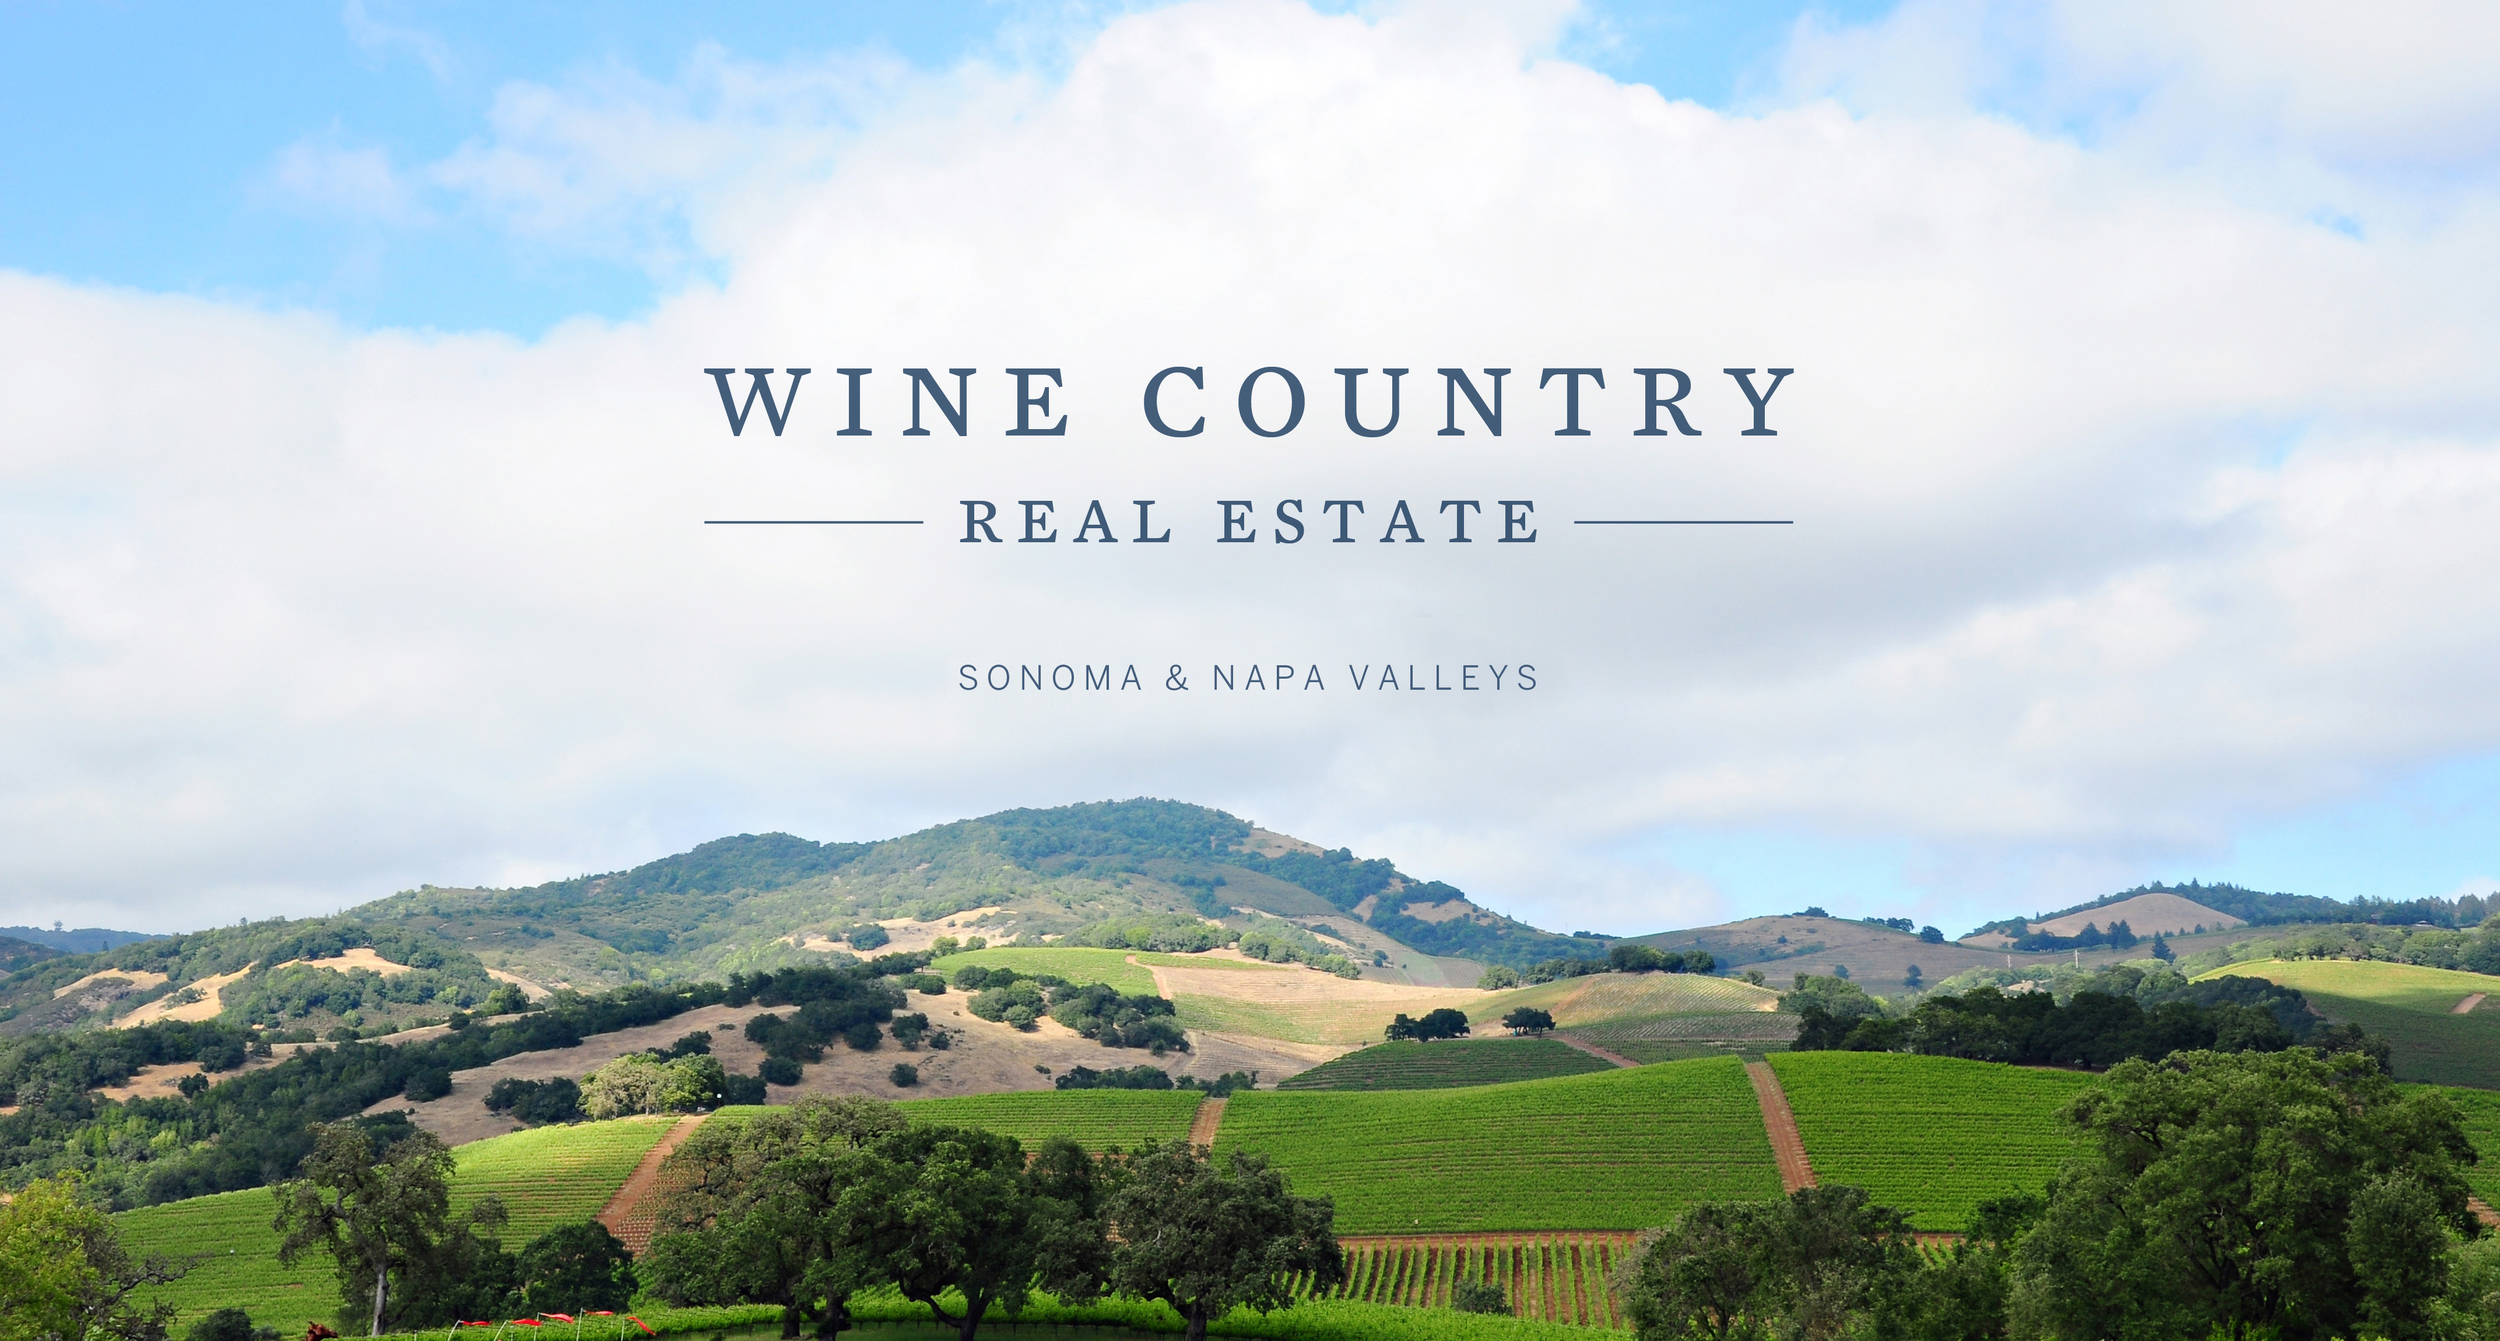 wine country real estate.jpg